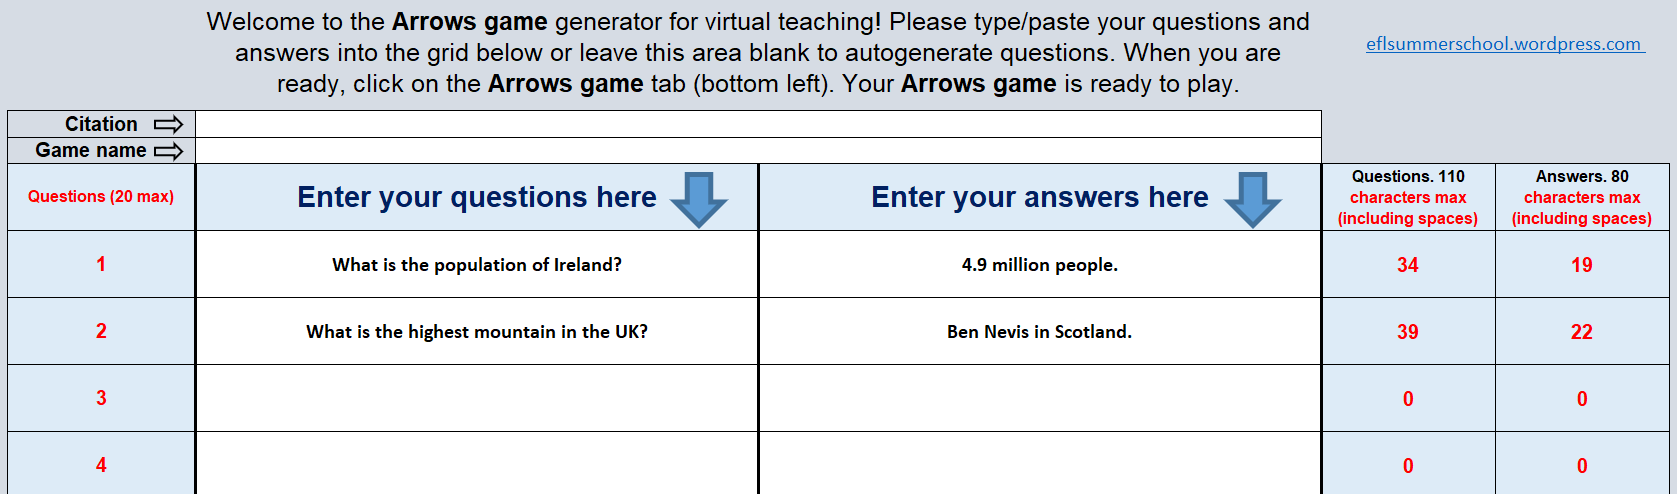 Arrows game data with questions and answers